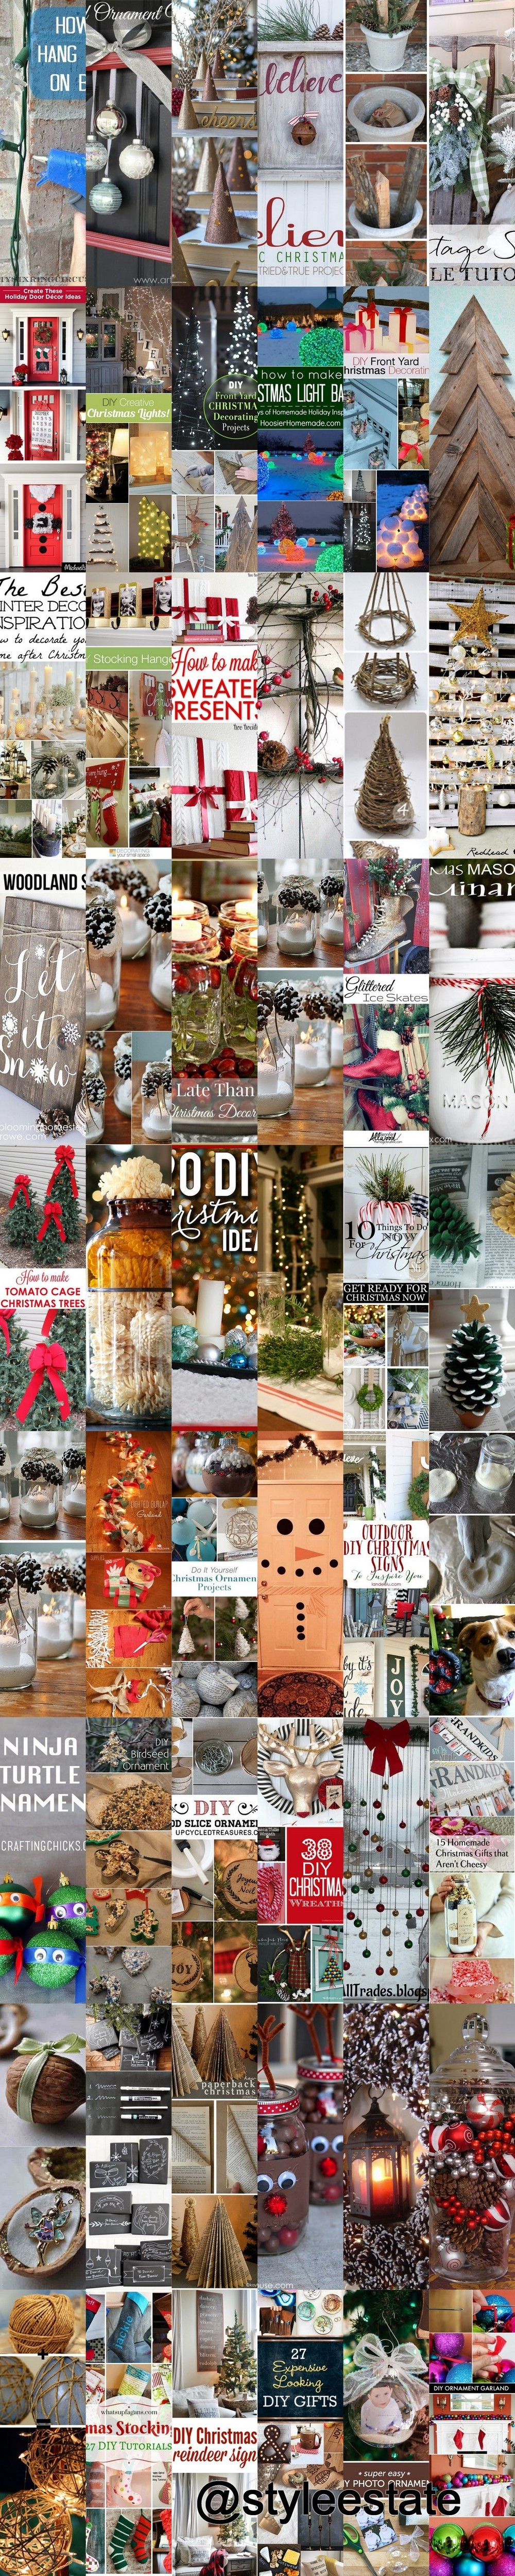 A Roundup of 54 Amazing DIY Christmas Tutorials and Other Great Holiday Ideas - Style Estate -